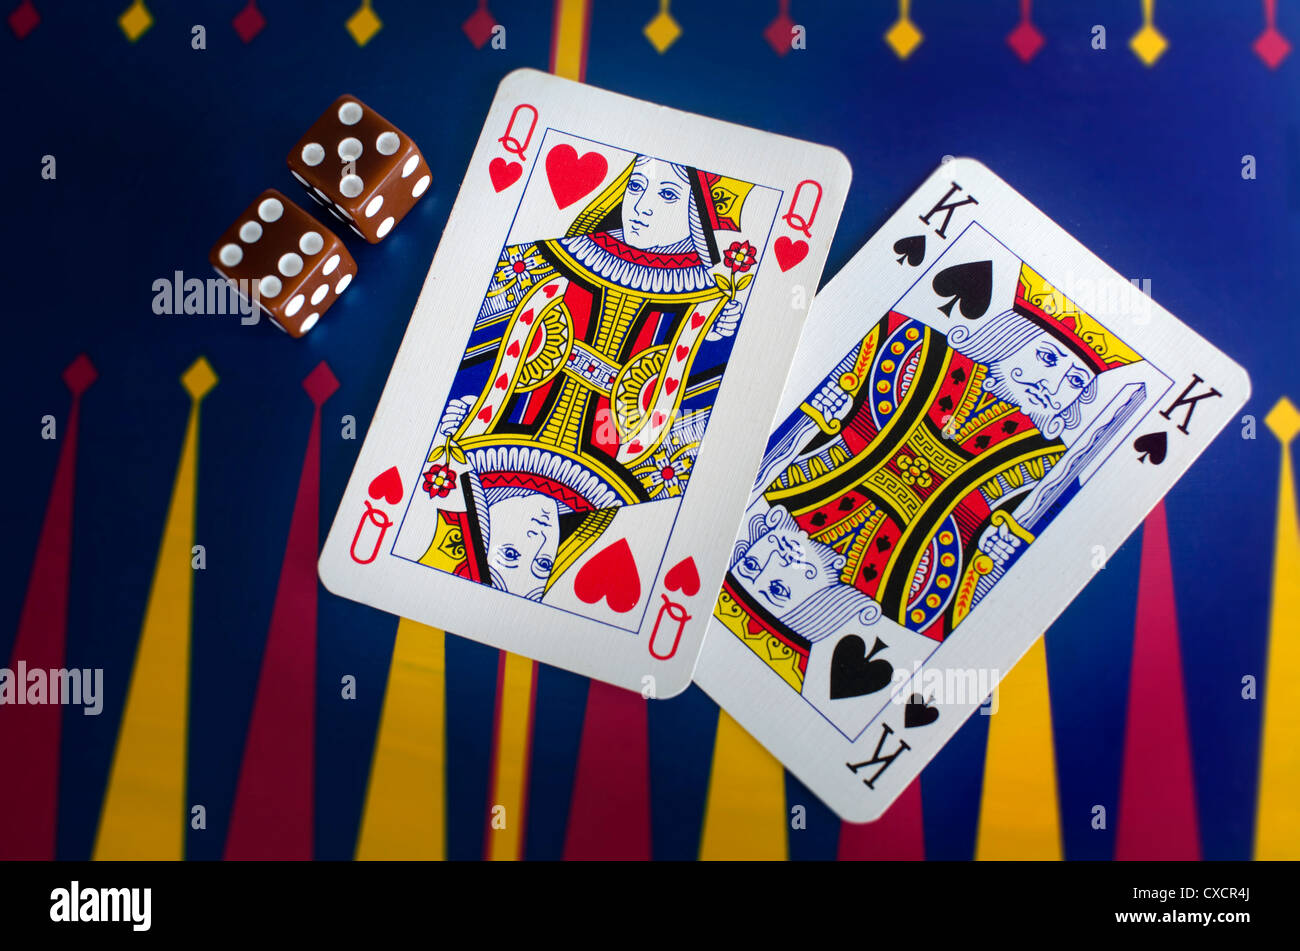 Queen and King playing cards with dice on a colorful casino table surface. Stock Photo